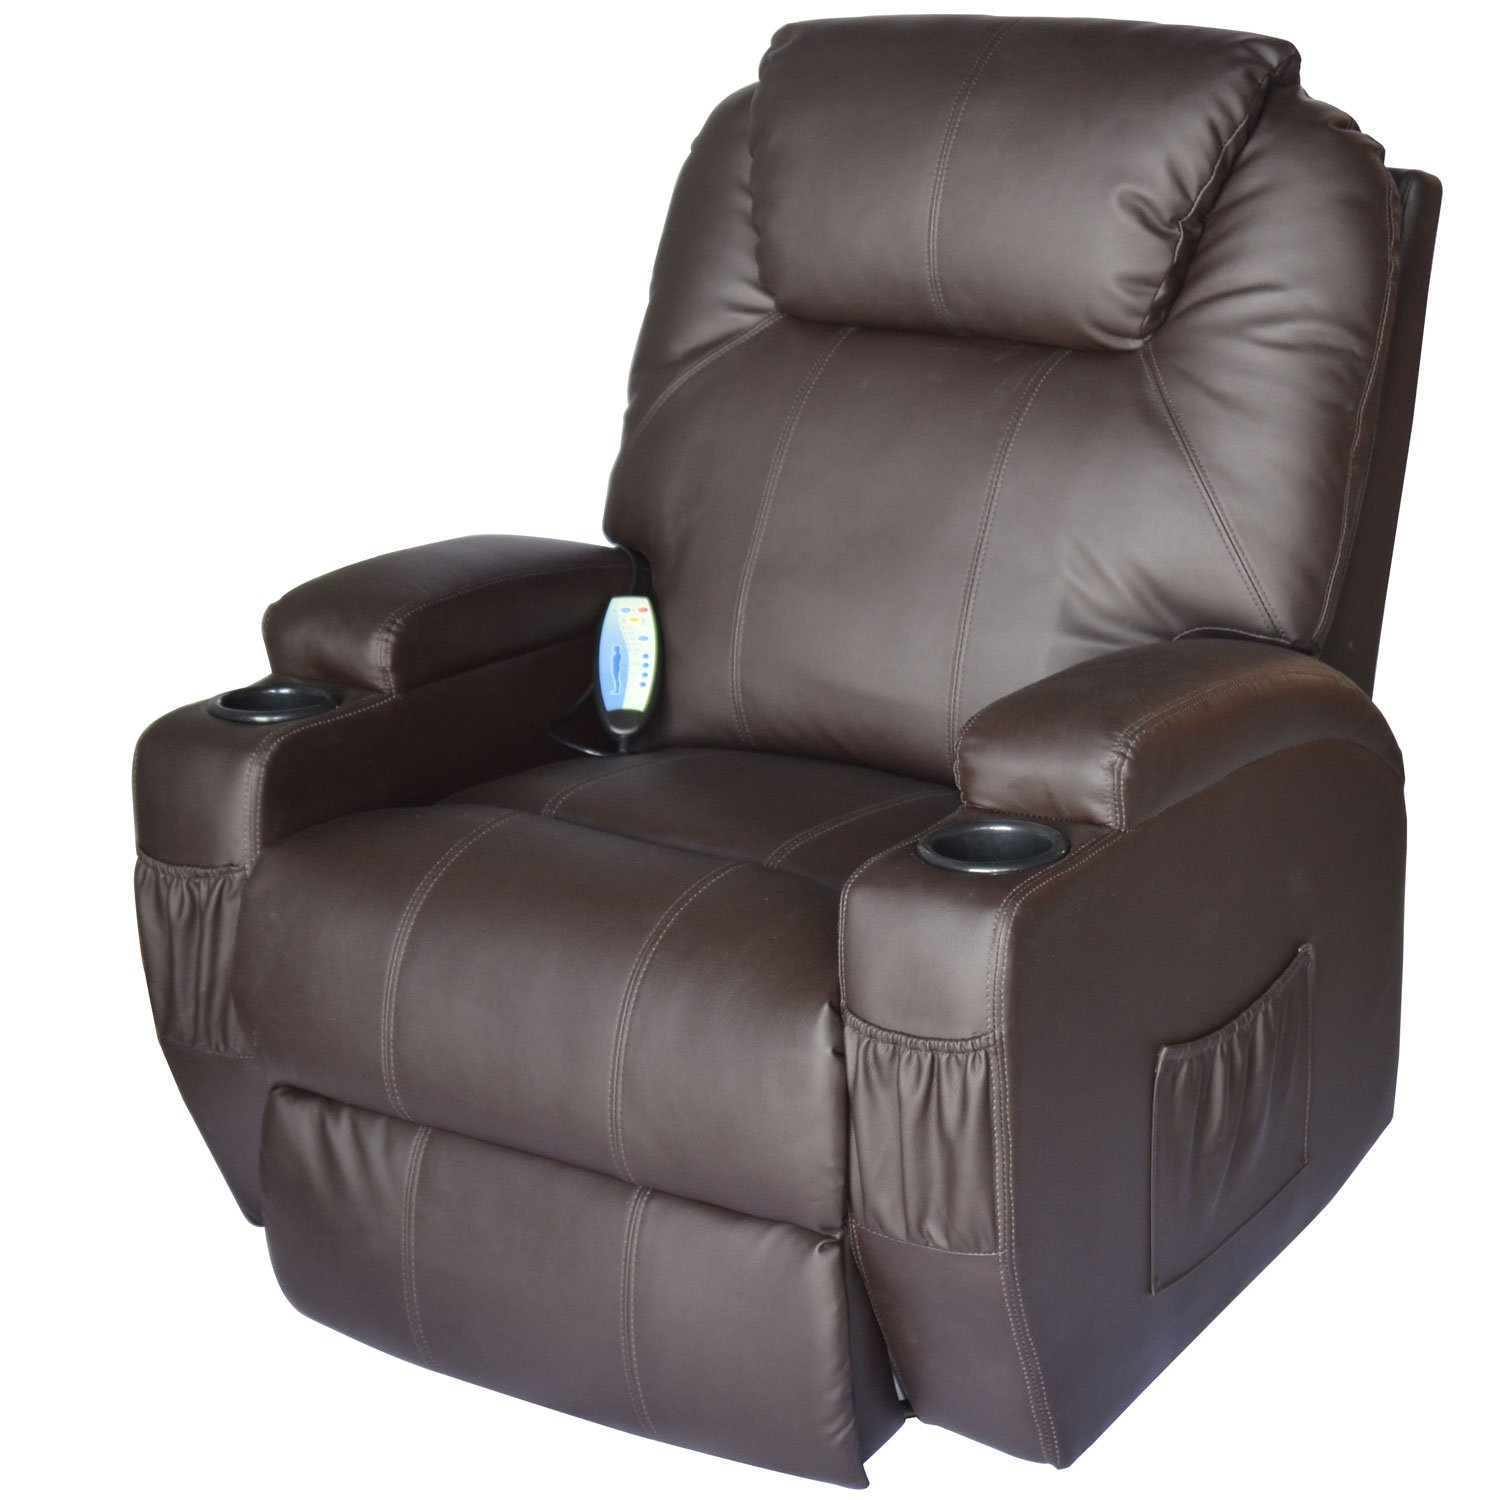 size wide chair extra recliners comfort recliner full you of reviews covers lounge medicare chairs pride massage lift easy double cool med up disabled that collection rental power lifts electric best